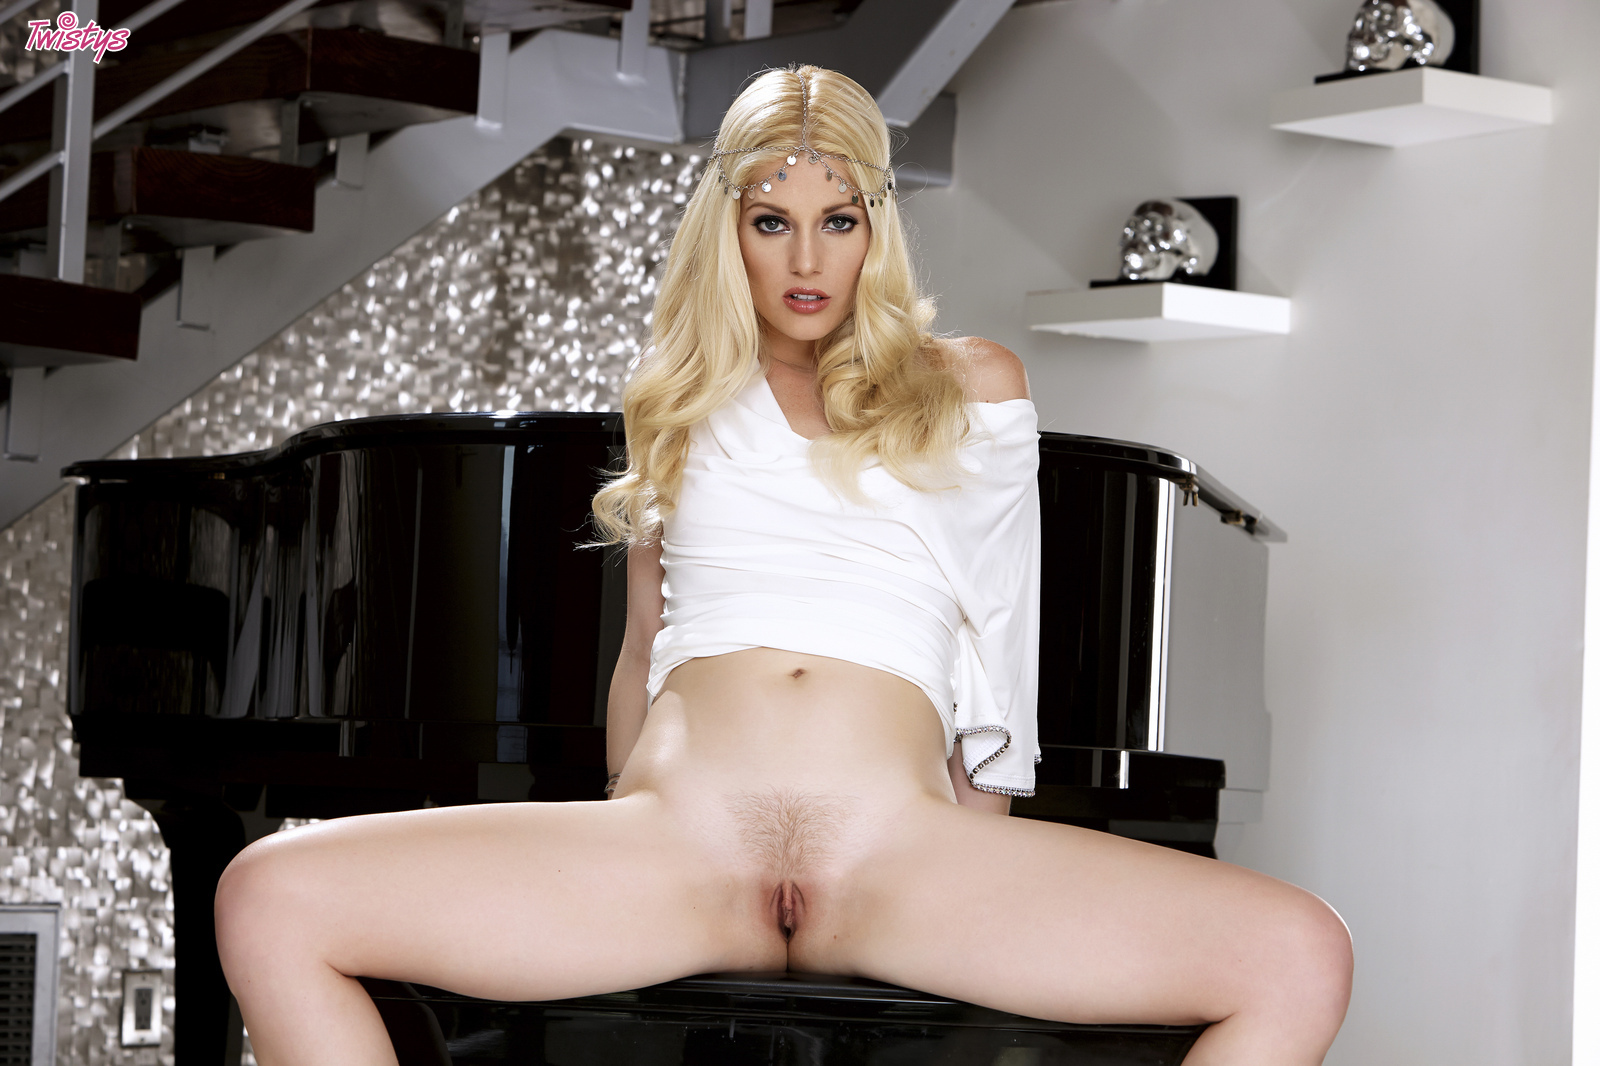 are not mandy dee anal creampie remarkable, this rather valuable